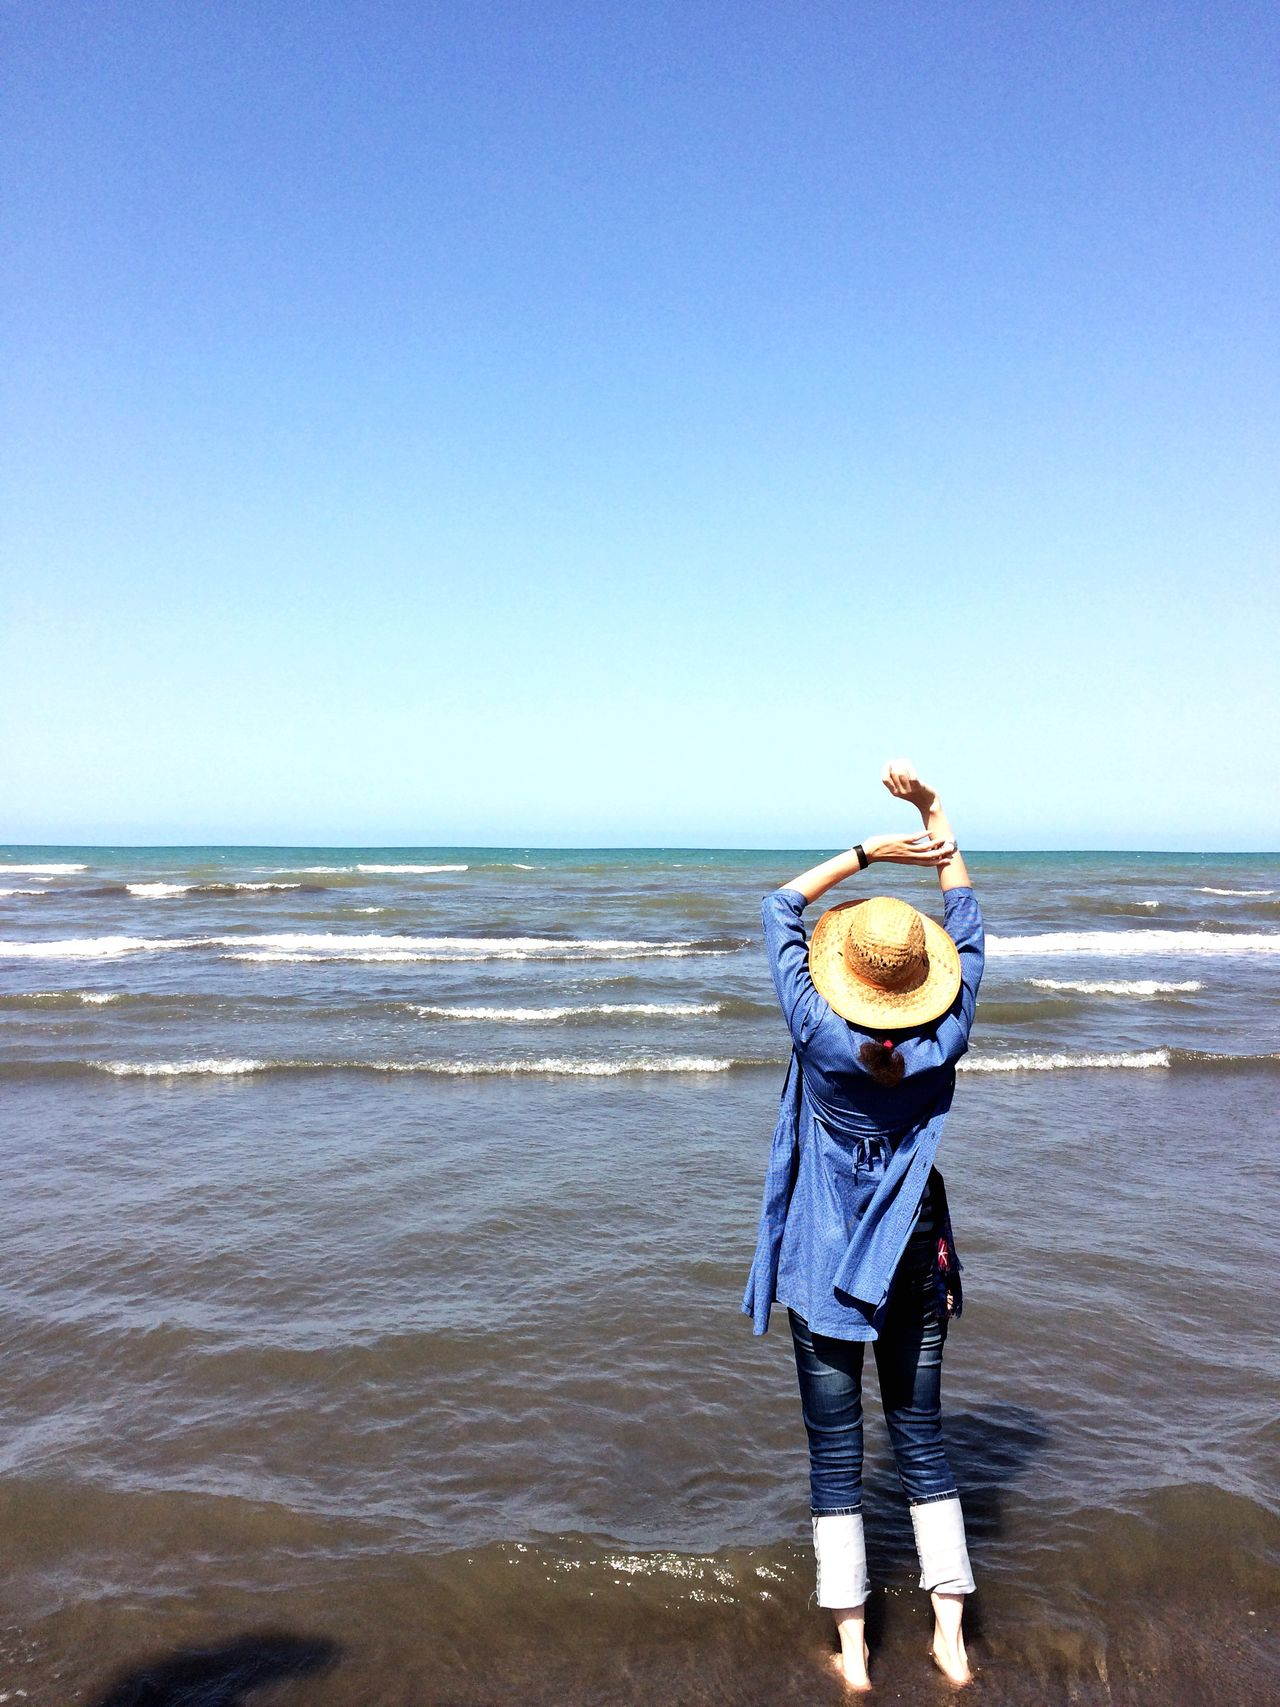 43 Golden Moments The Sea And Me Woman And The Sea In The Sea (good Time) Relaxing Infinity Summertime Deep Blue Sea Deep Blue Sky All In Blue Iran Gilan Caspian Sea Fine Art Color Of Life Color Palette